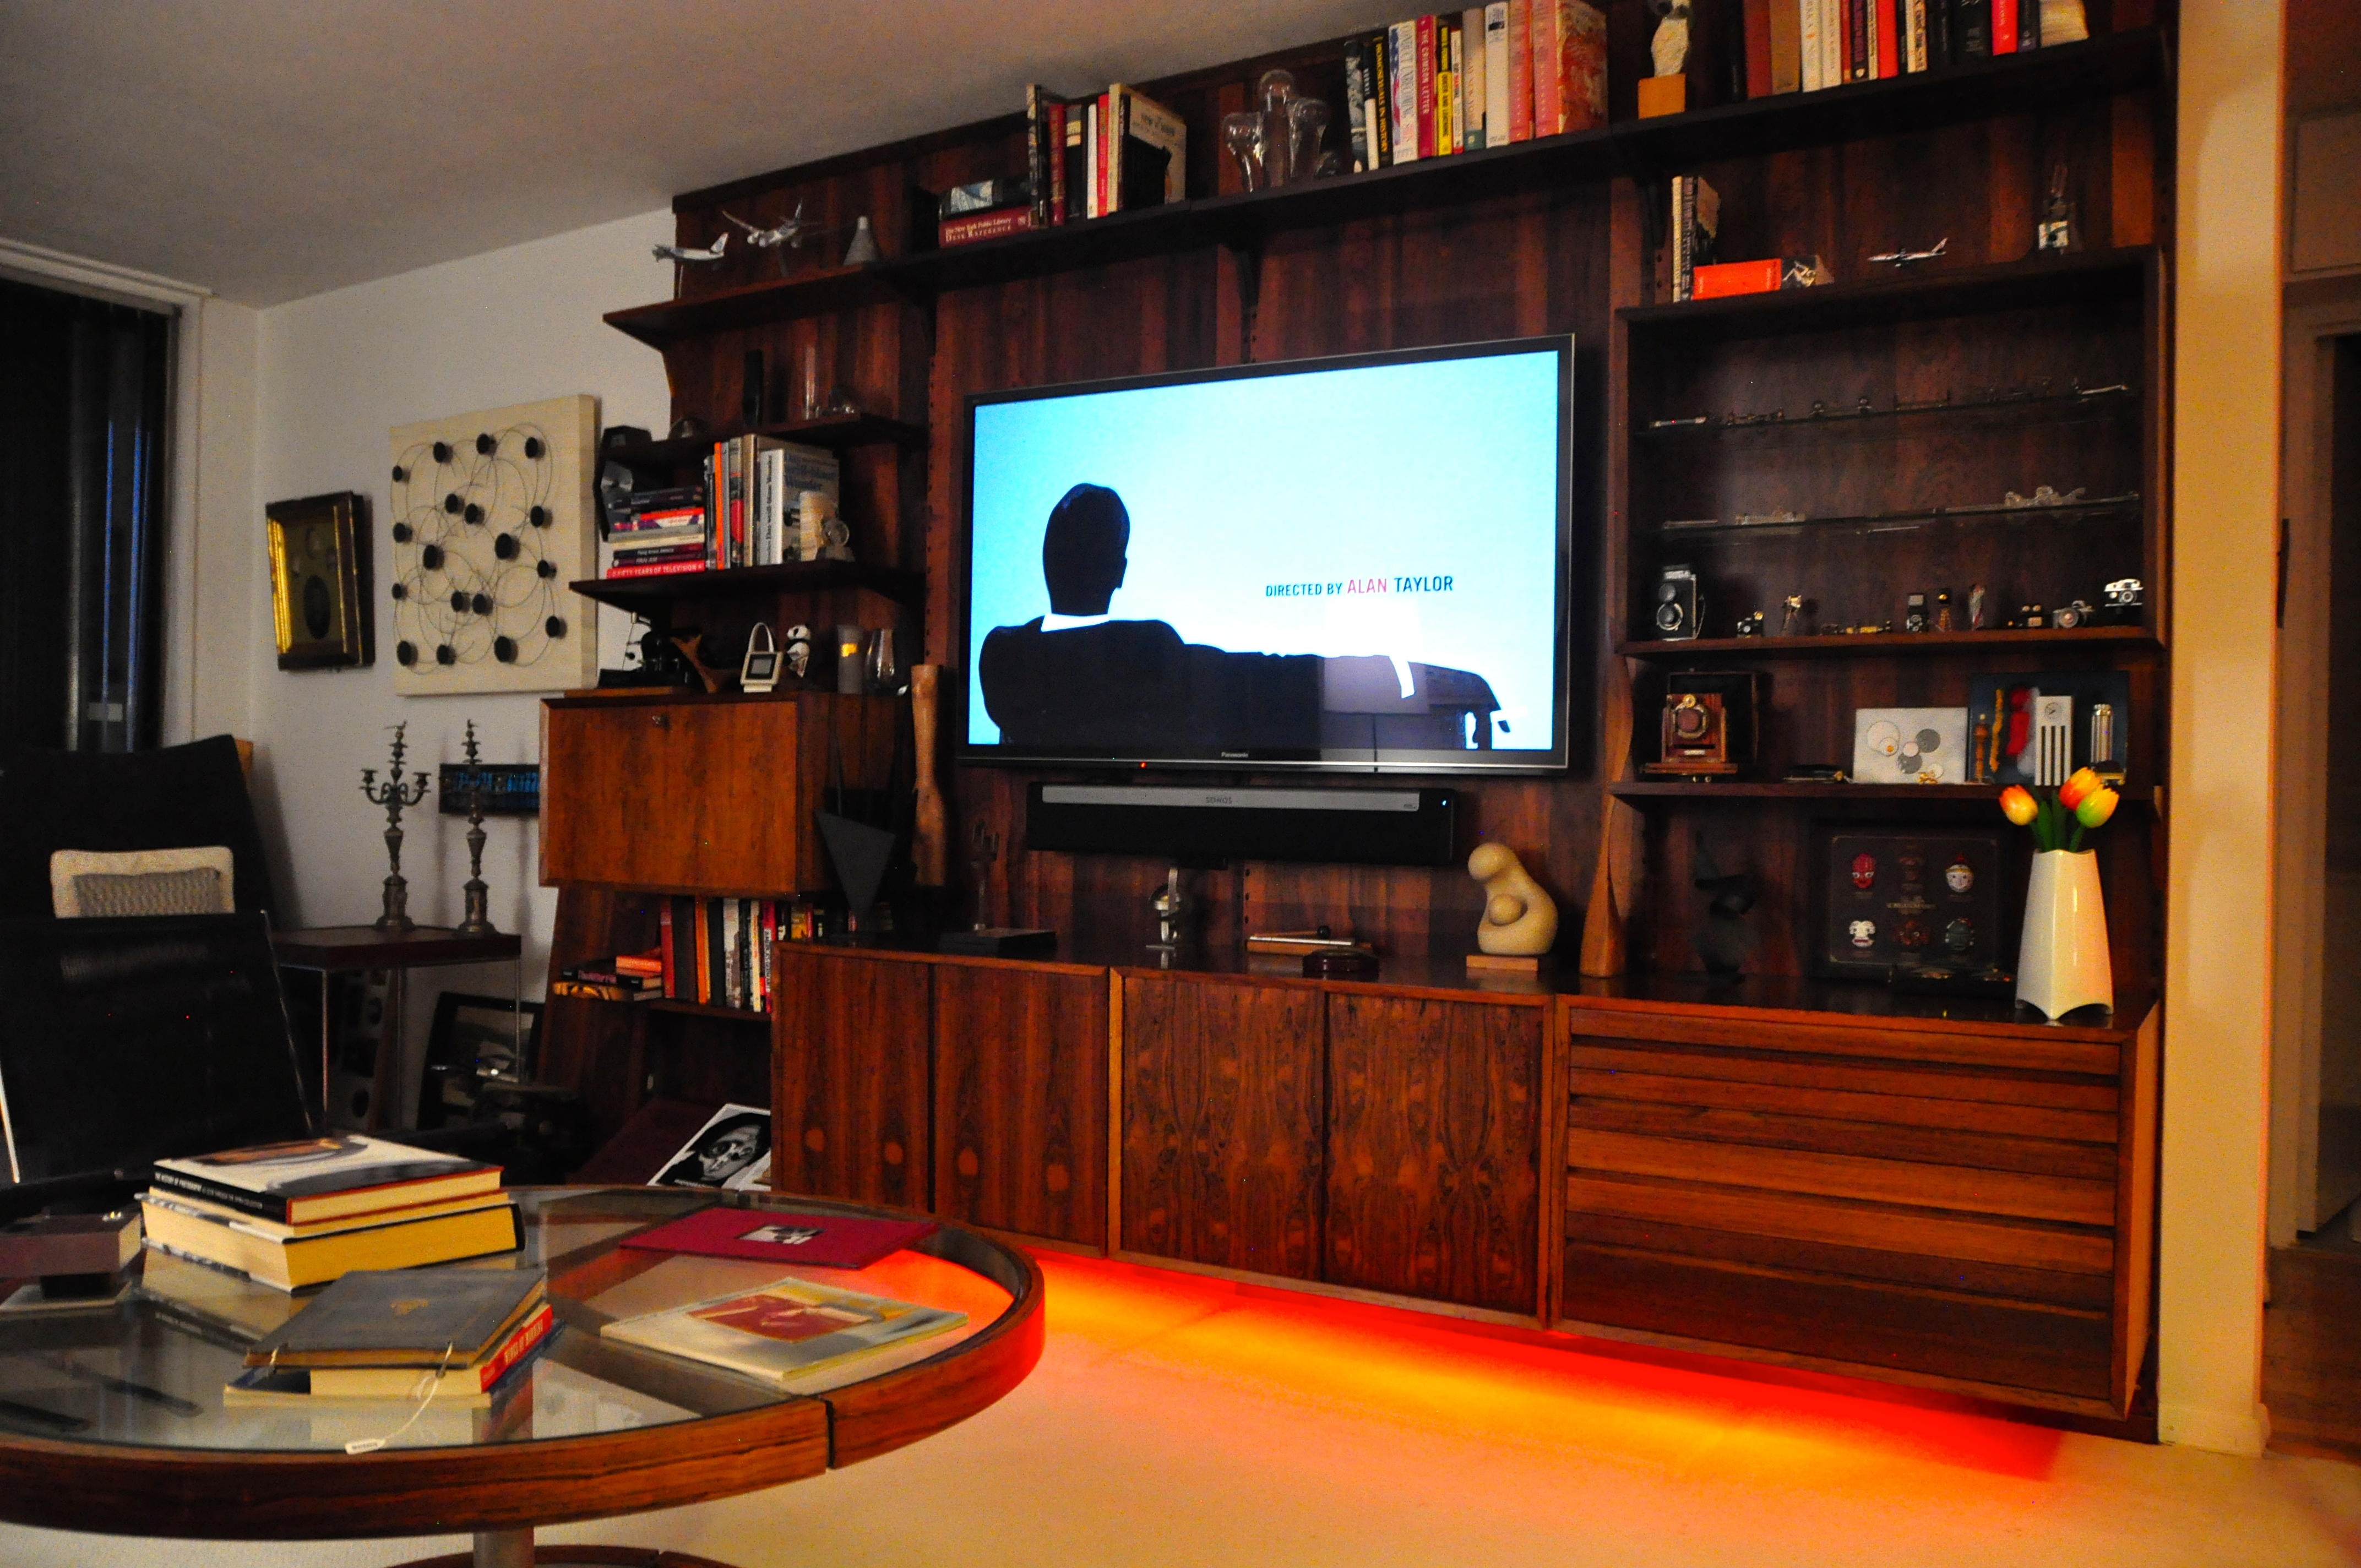 Friends of Hue LightStrip mounted under the cabinet (set to red)